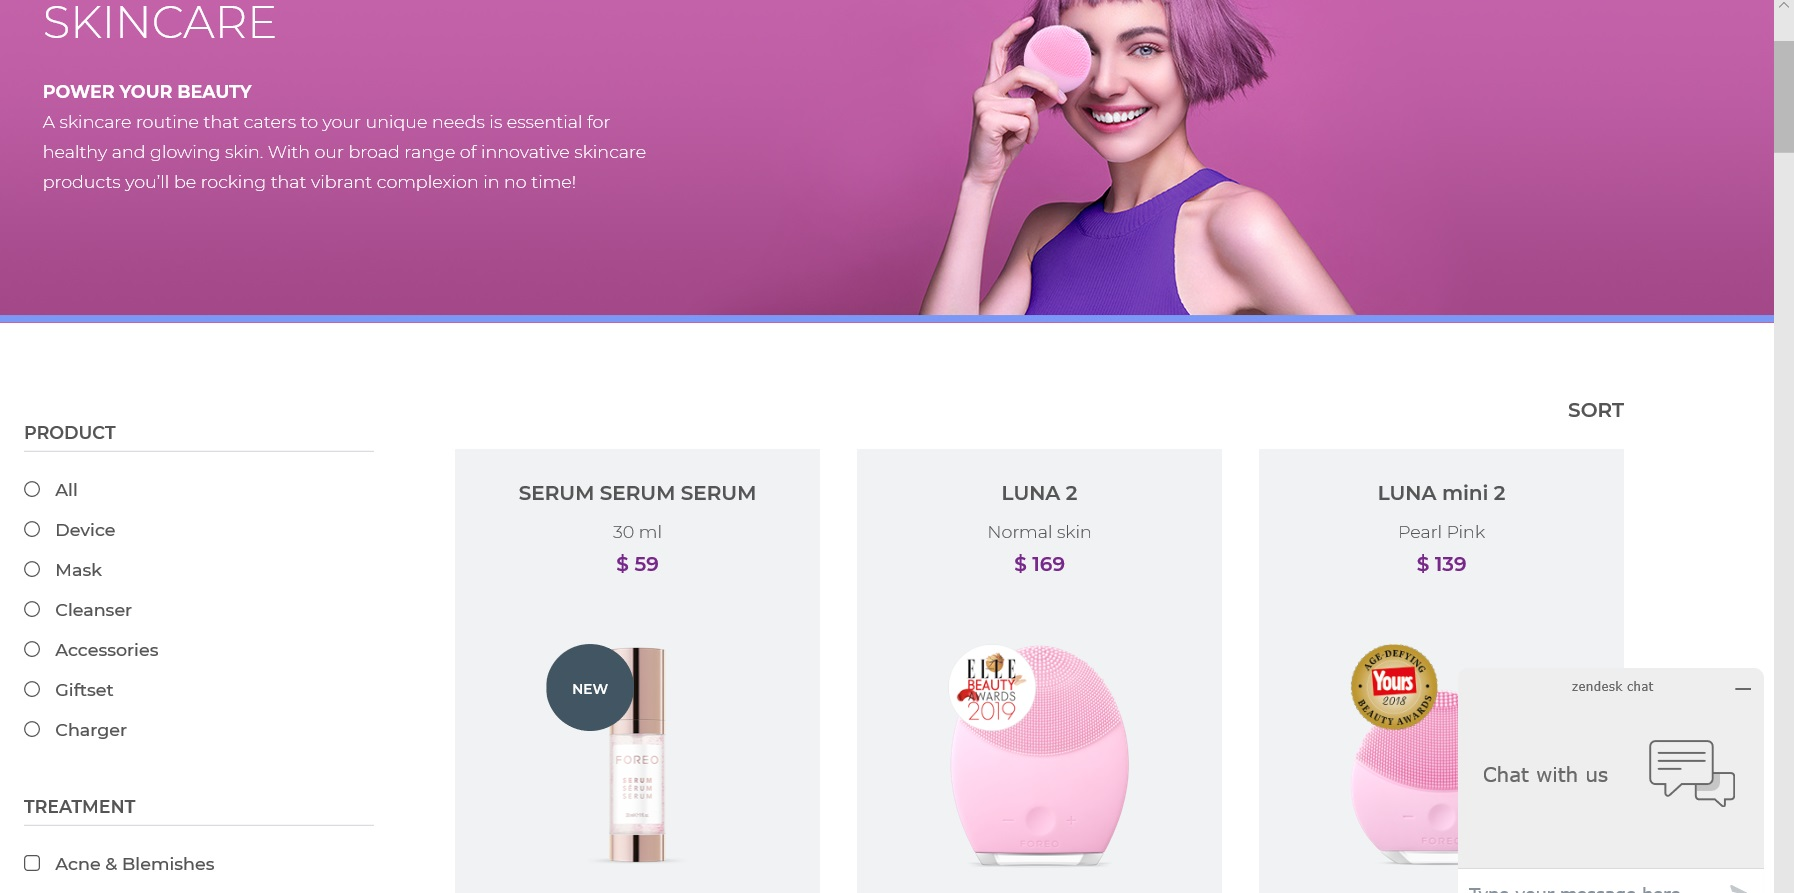 Catalogue of FOREO skincare products.